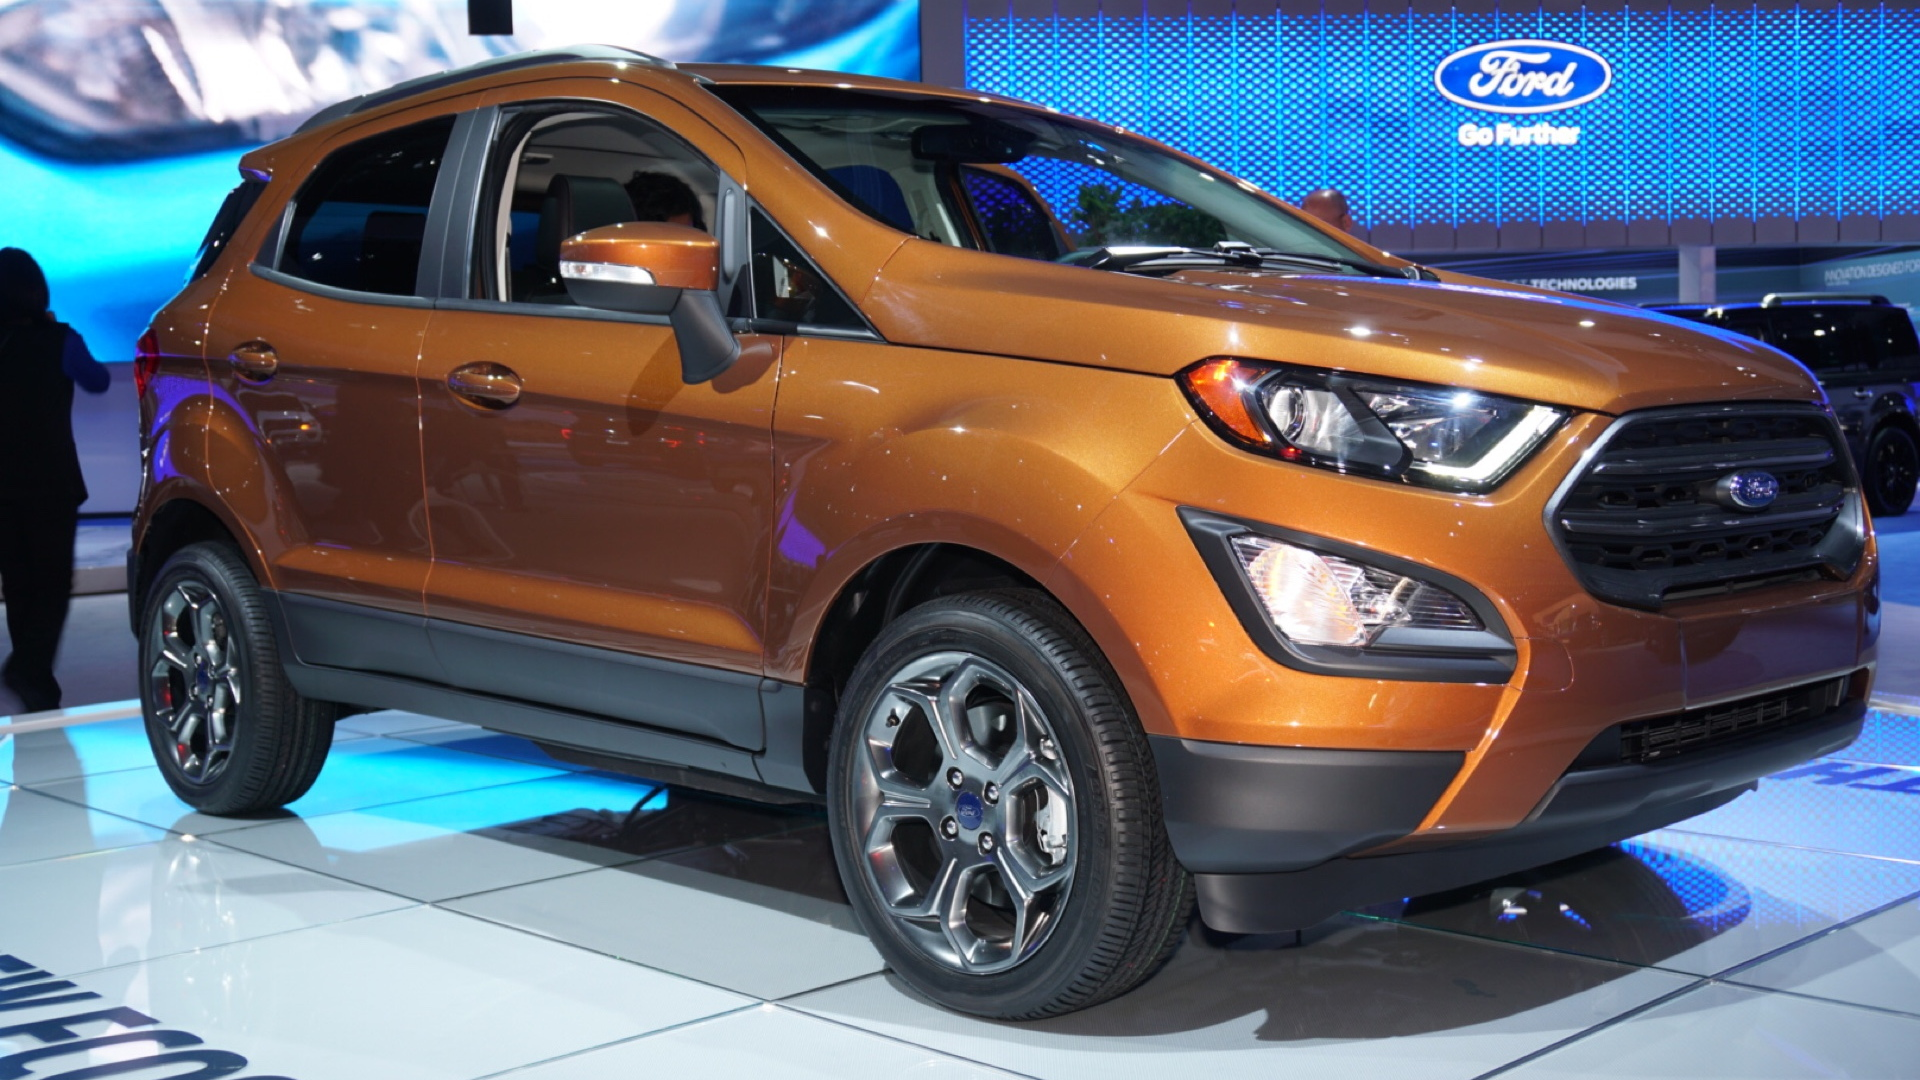 2018 Ford Ecosport, 2016 Los Angeles Auto Show